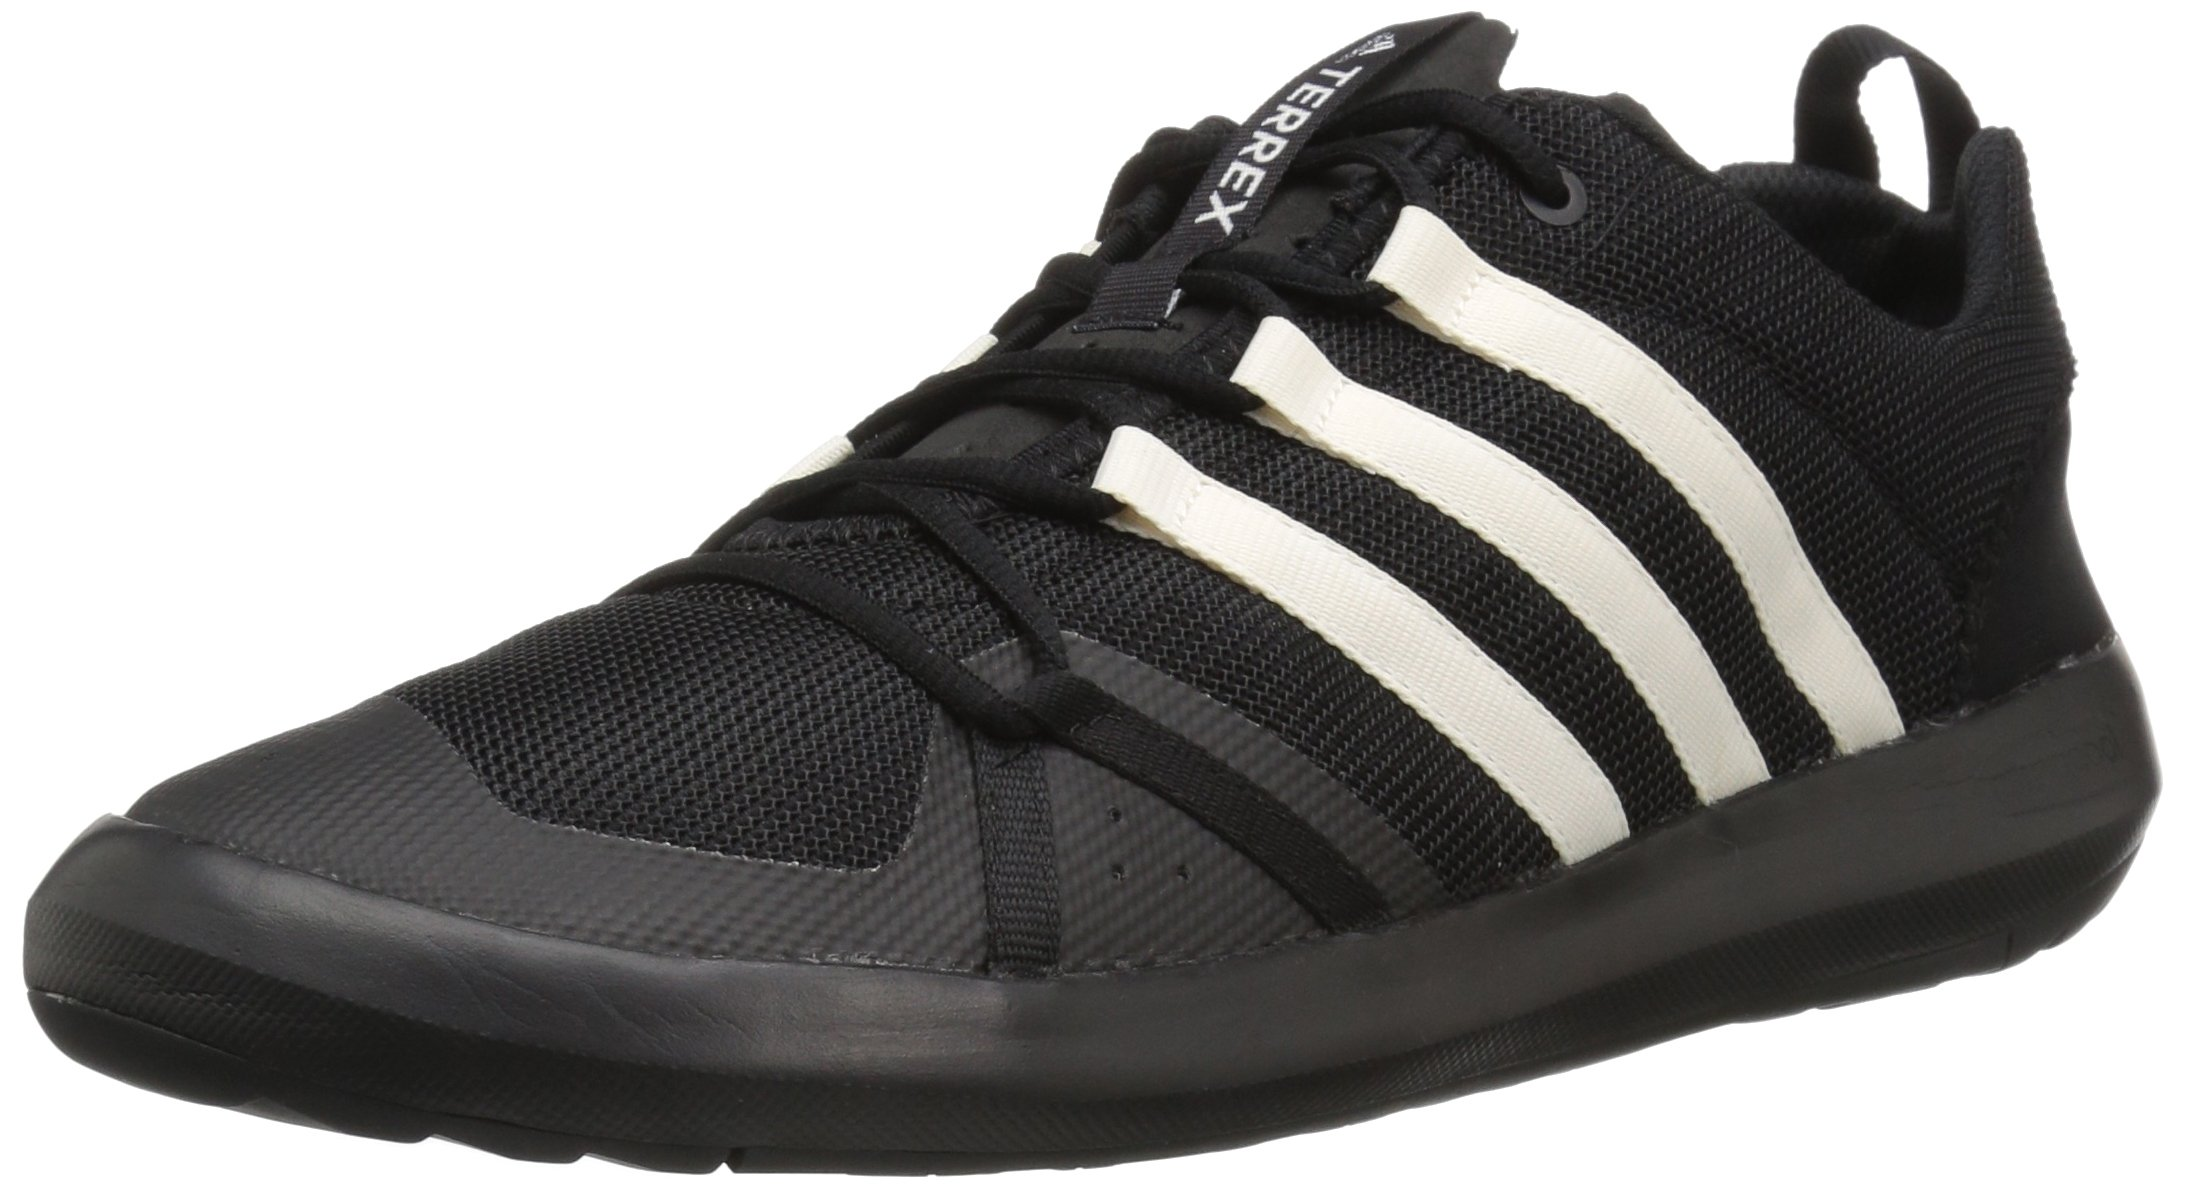 buy online eb317 eb8a4 adidas outdoor Men s Terrex Climacool Boat Water Shoe, Black Chalk White Chalk  White